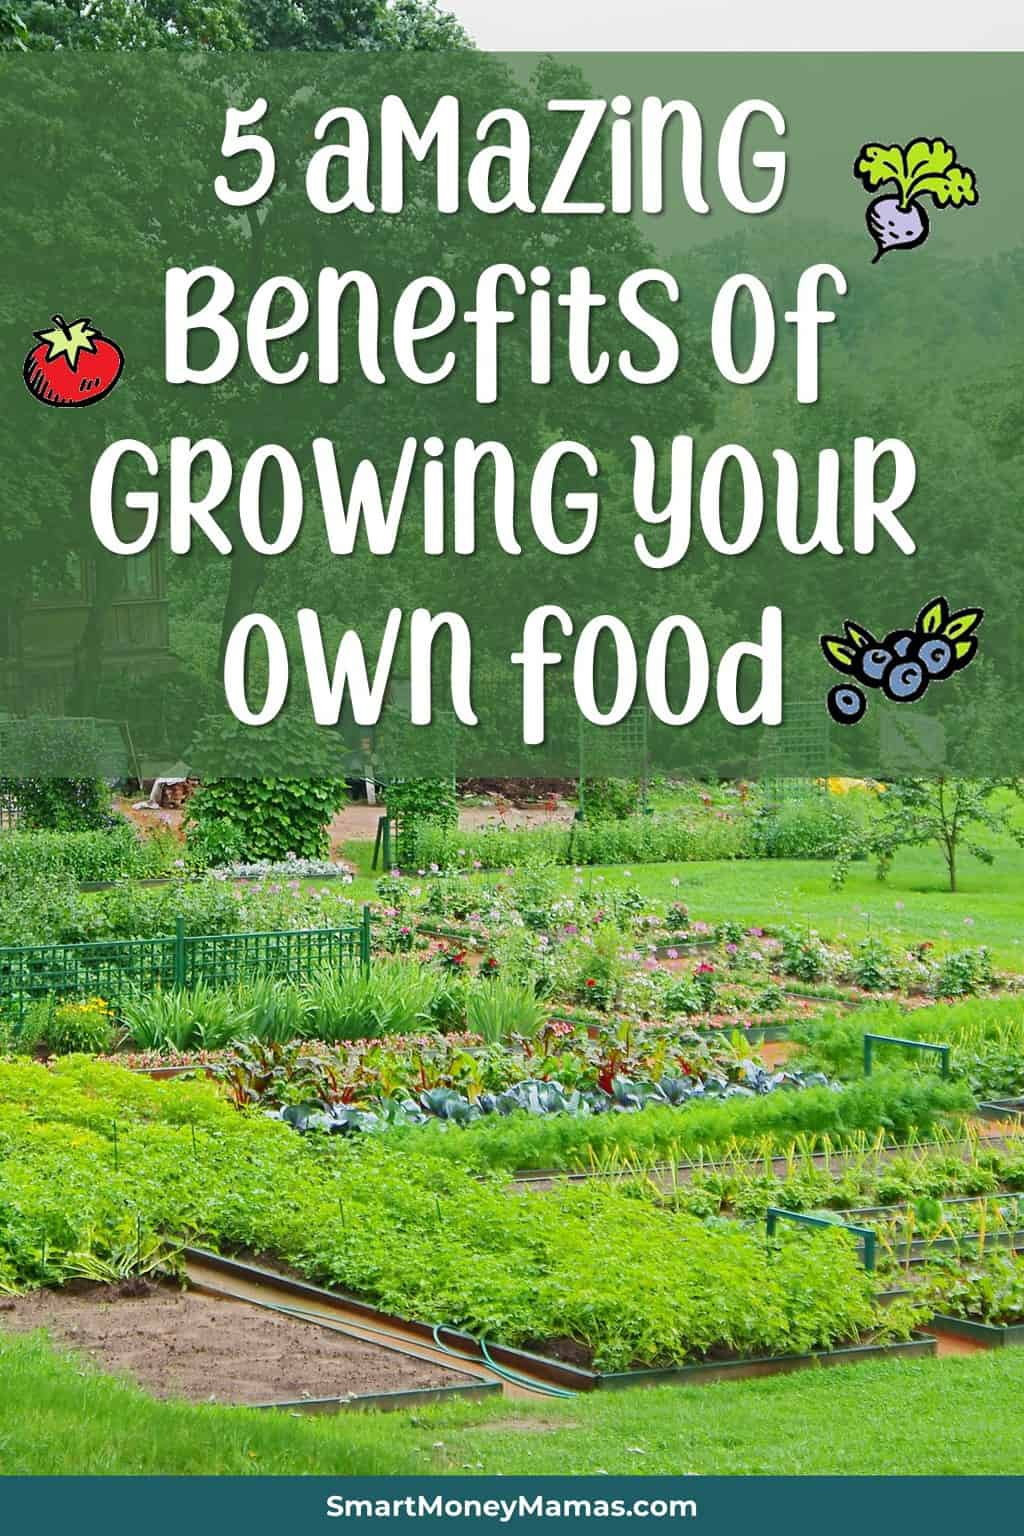 5 health and lifestyle benefits to growing your own food | Why growing your own food is about more than saving money #healthyliving #homesteading #growyourown #growfoodnotlawns